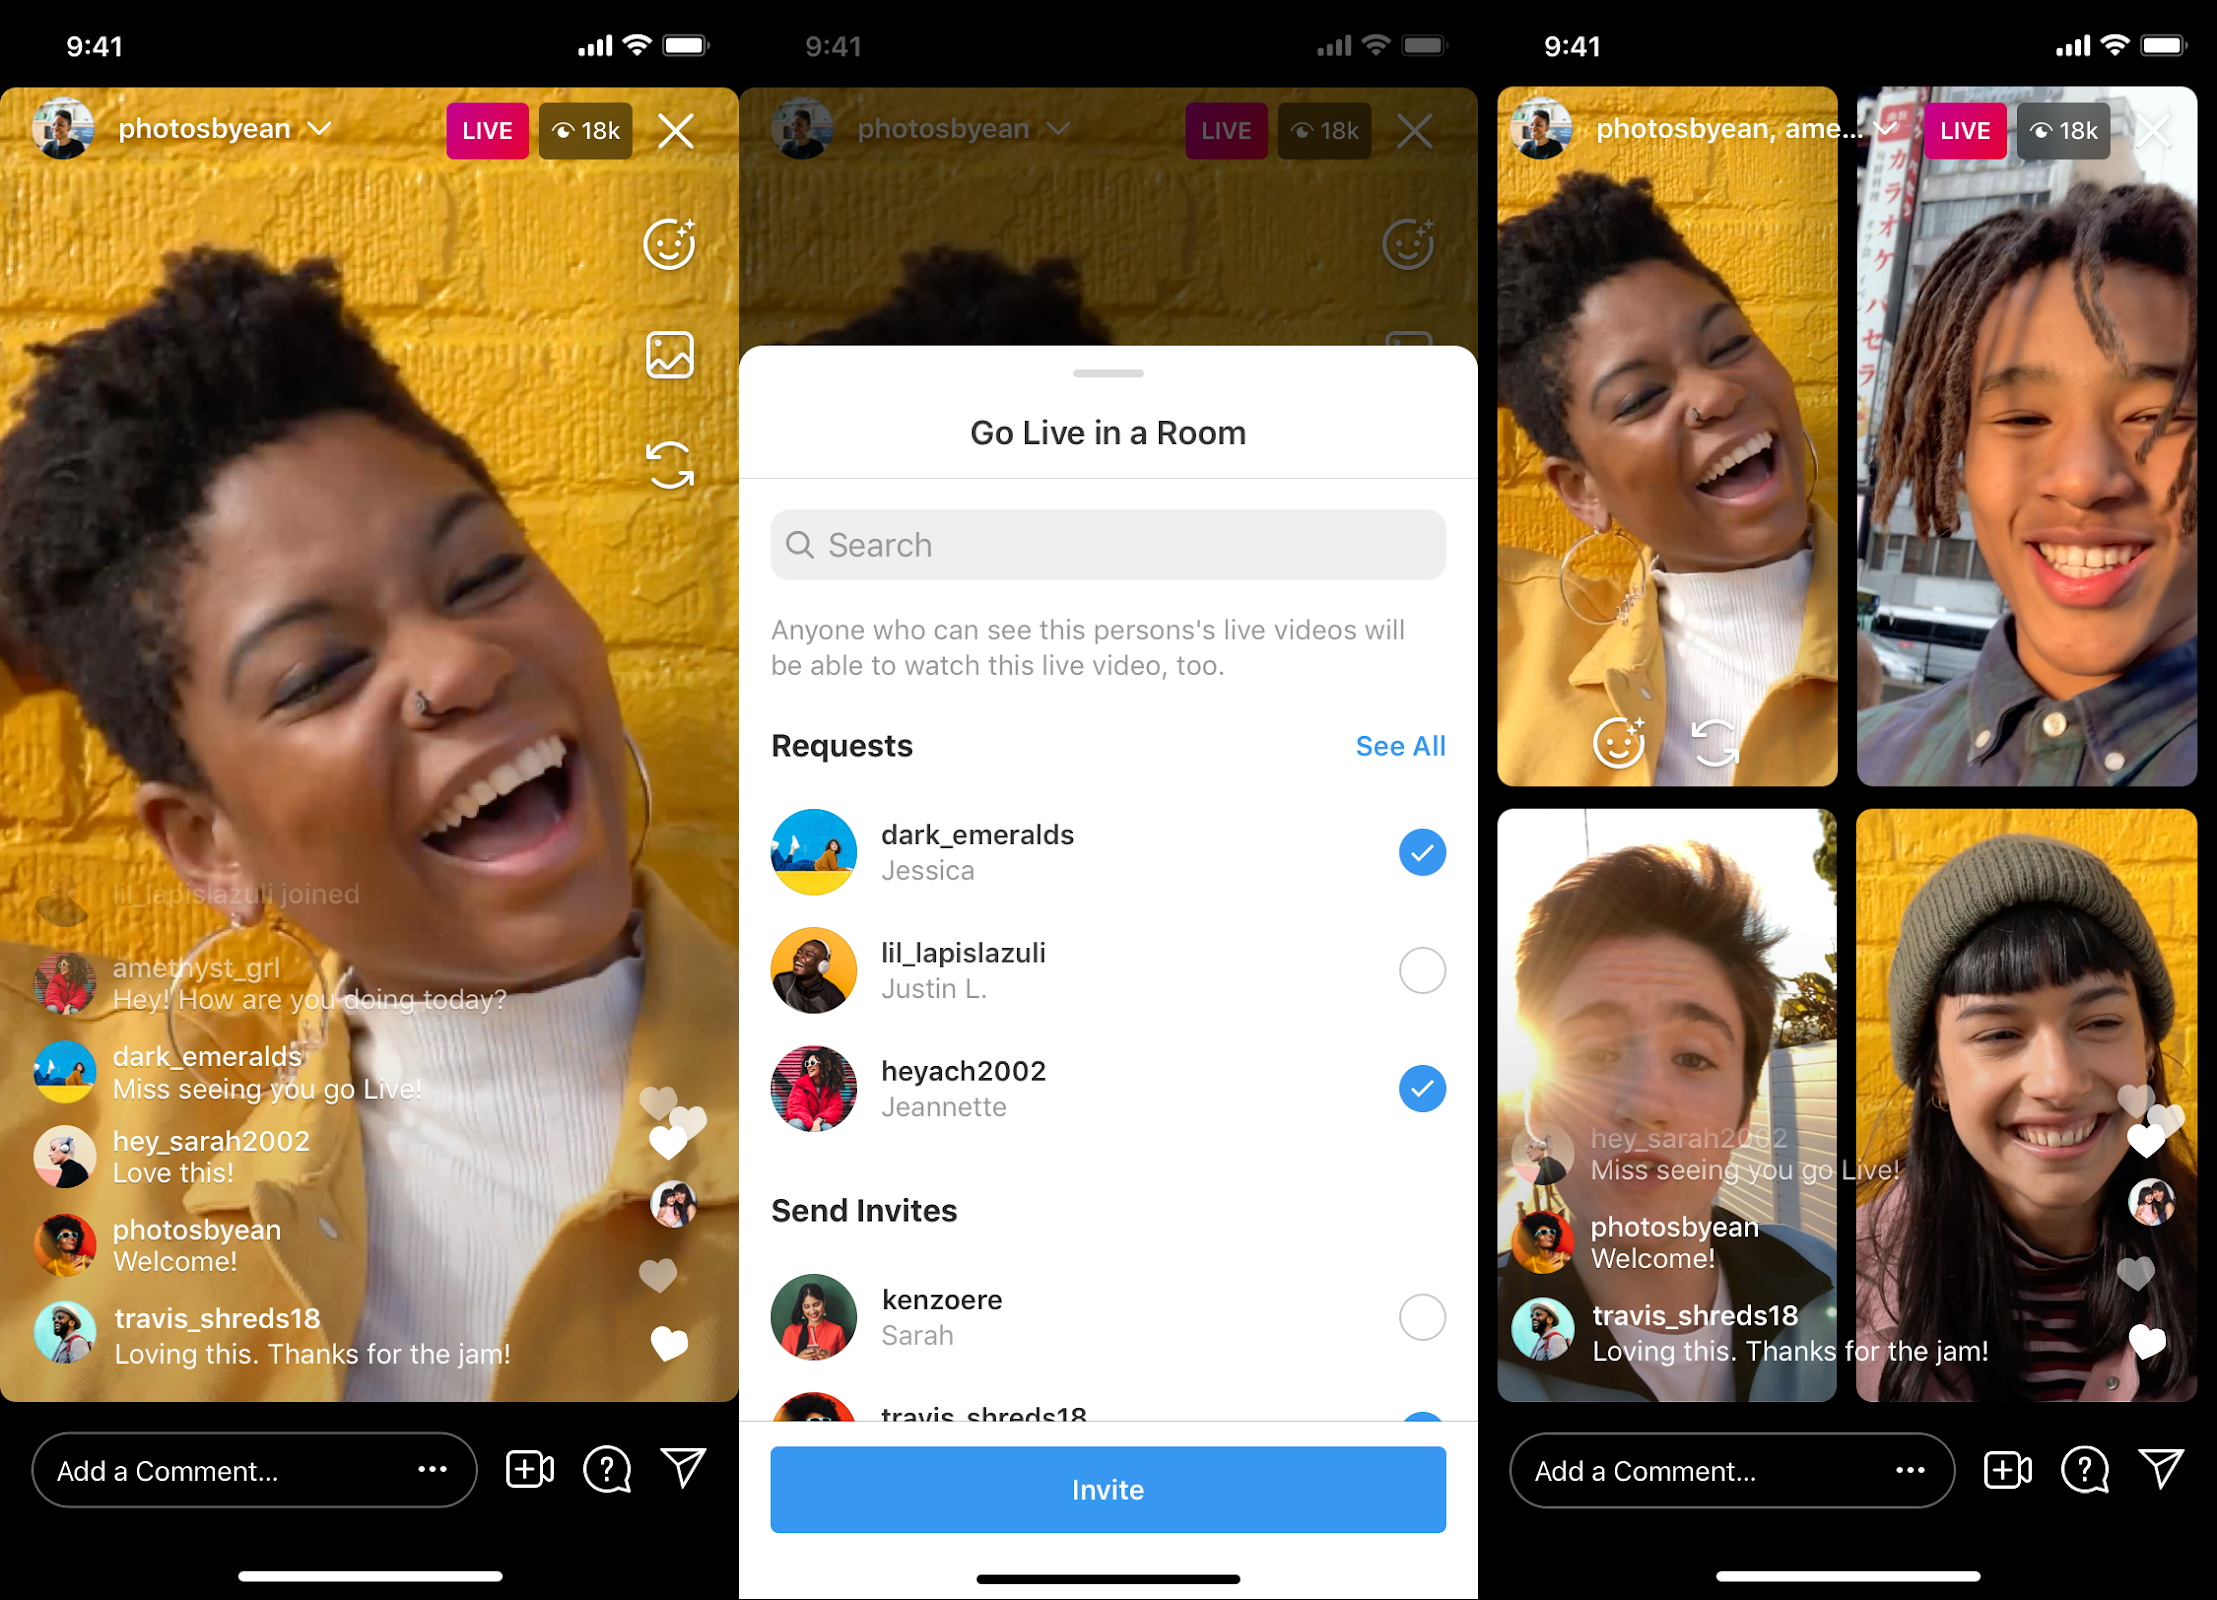 Instagram's new Live Rooms lets up to 4 live stream together - RouteNote  Blog